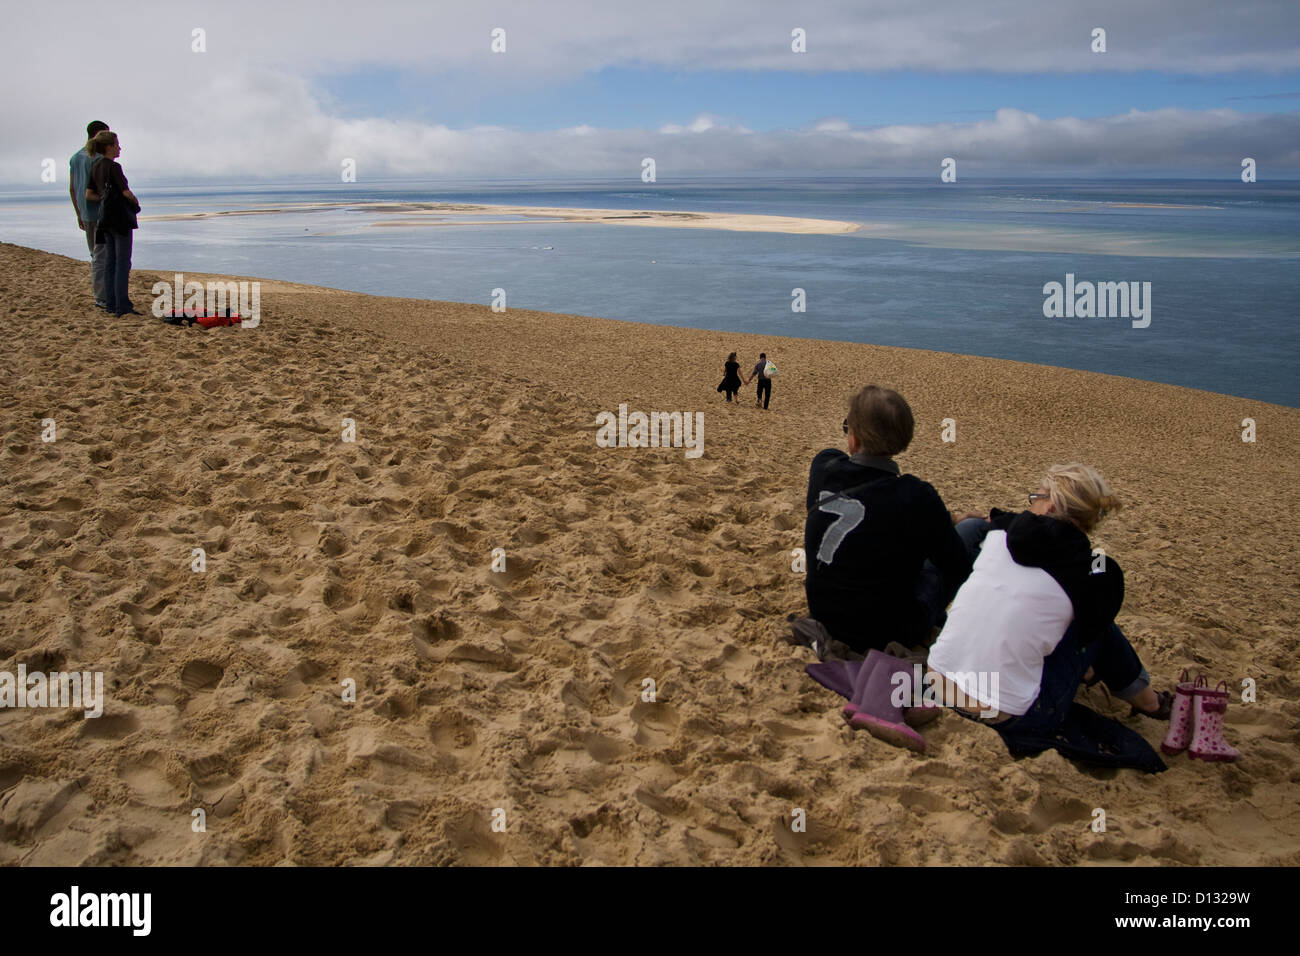 France Bordeaux Pyla Bassin Arcachon Dune Du Pilat Stock Photo Alamy